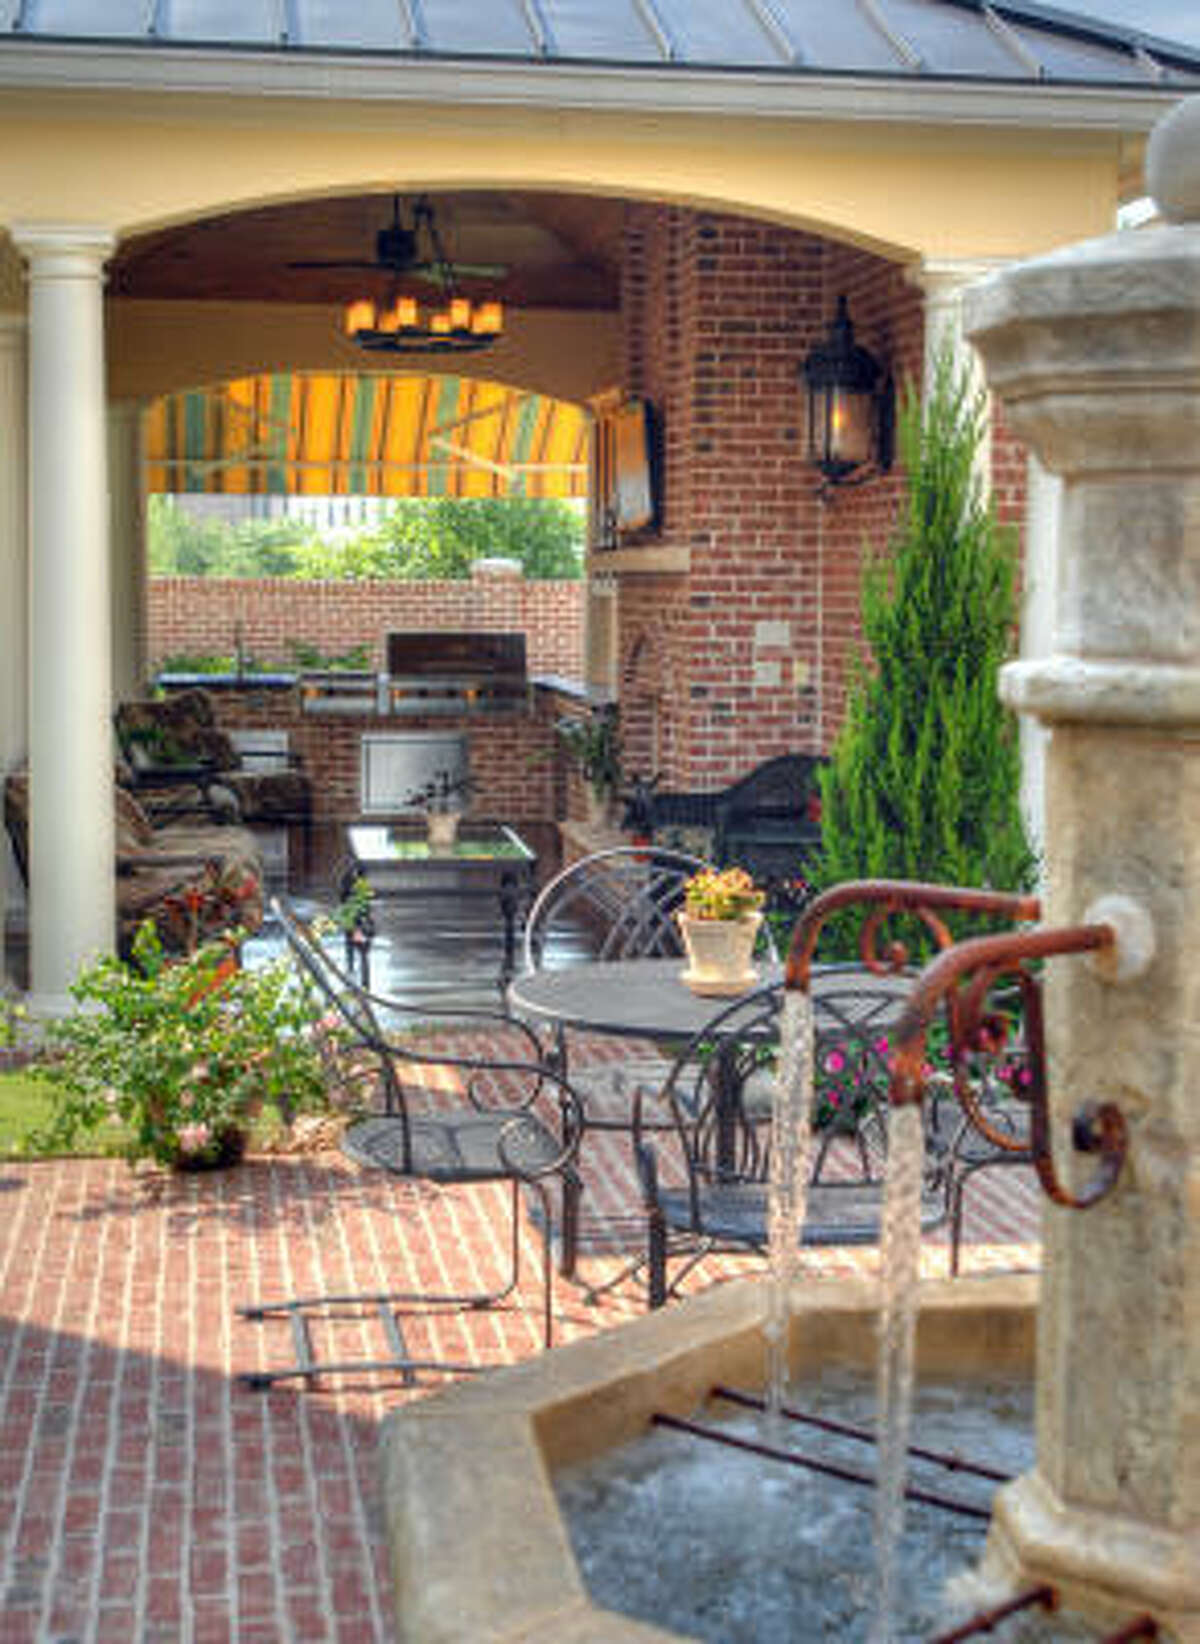 Outdoor kitchens can complement outstanding backyard landscaping and water features to create an elegant oasis.